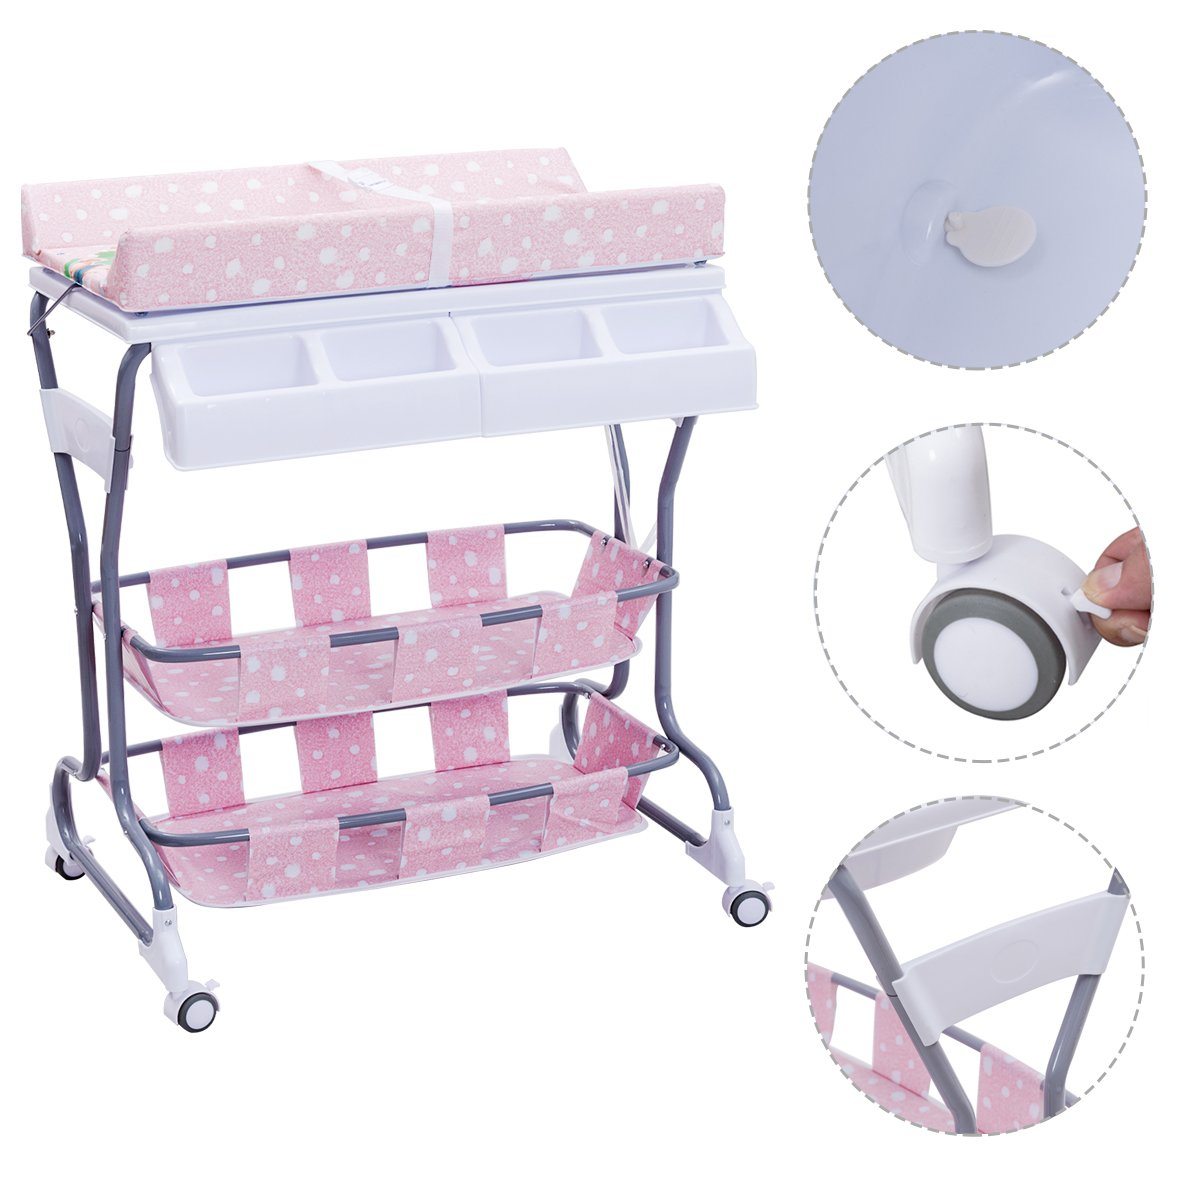 Costway 2 in 1 Infant Changing Table Baby Bath Tub Unit Rolling Station Storage Dresser (Pink)